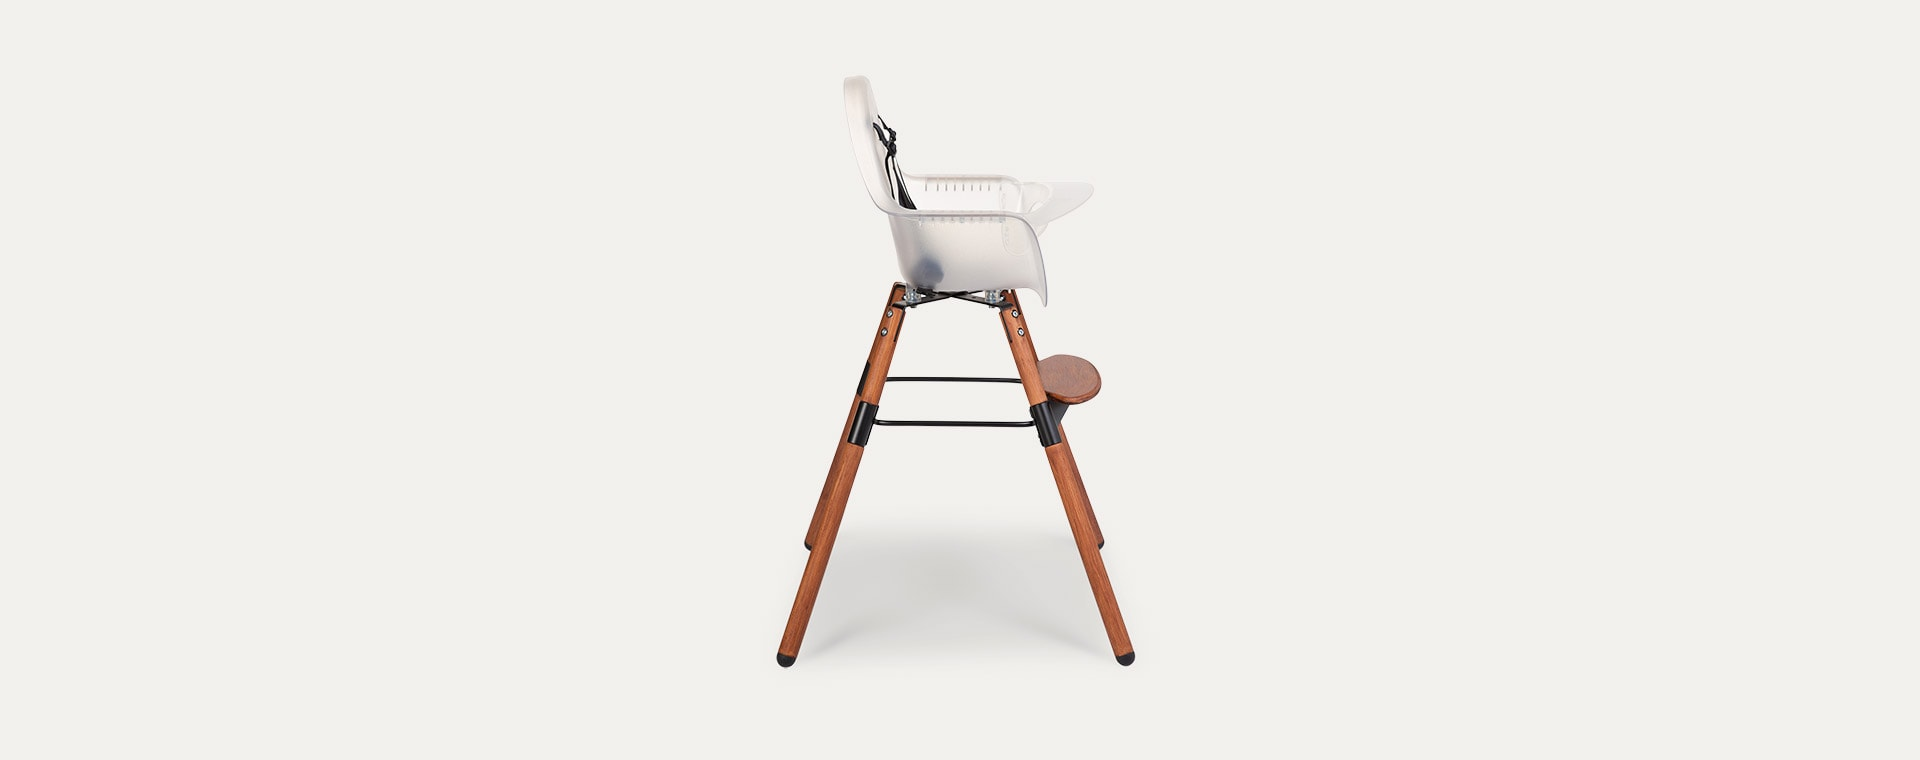 Frosted Childhome Evolu 2 Chair 2 in 1 + Bumper